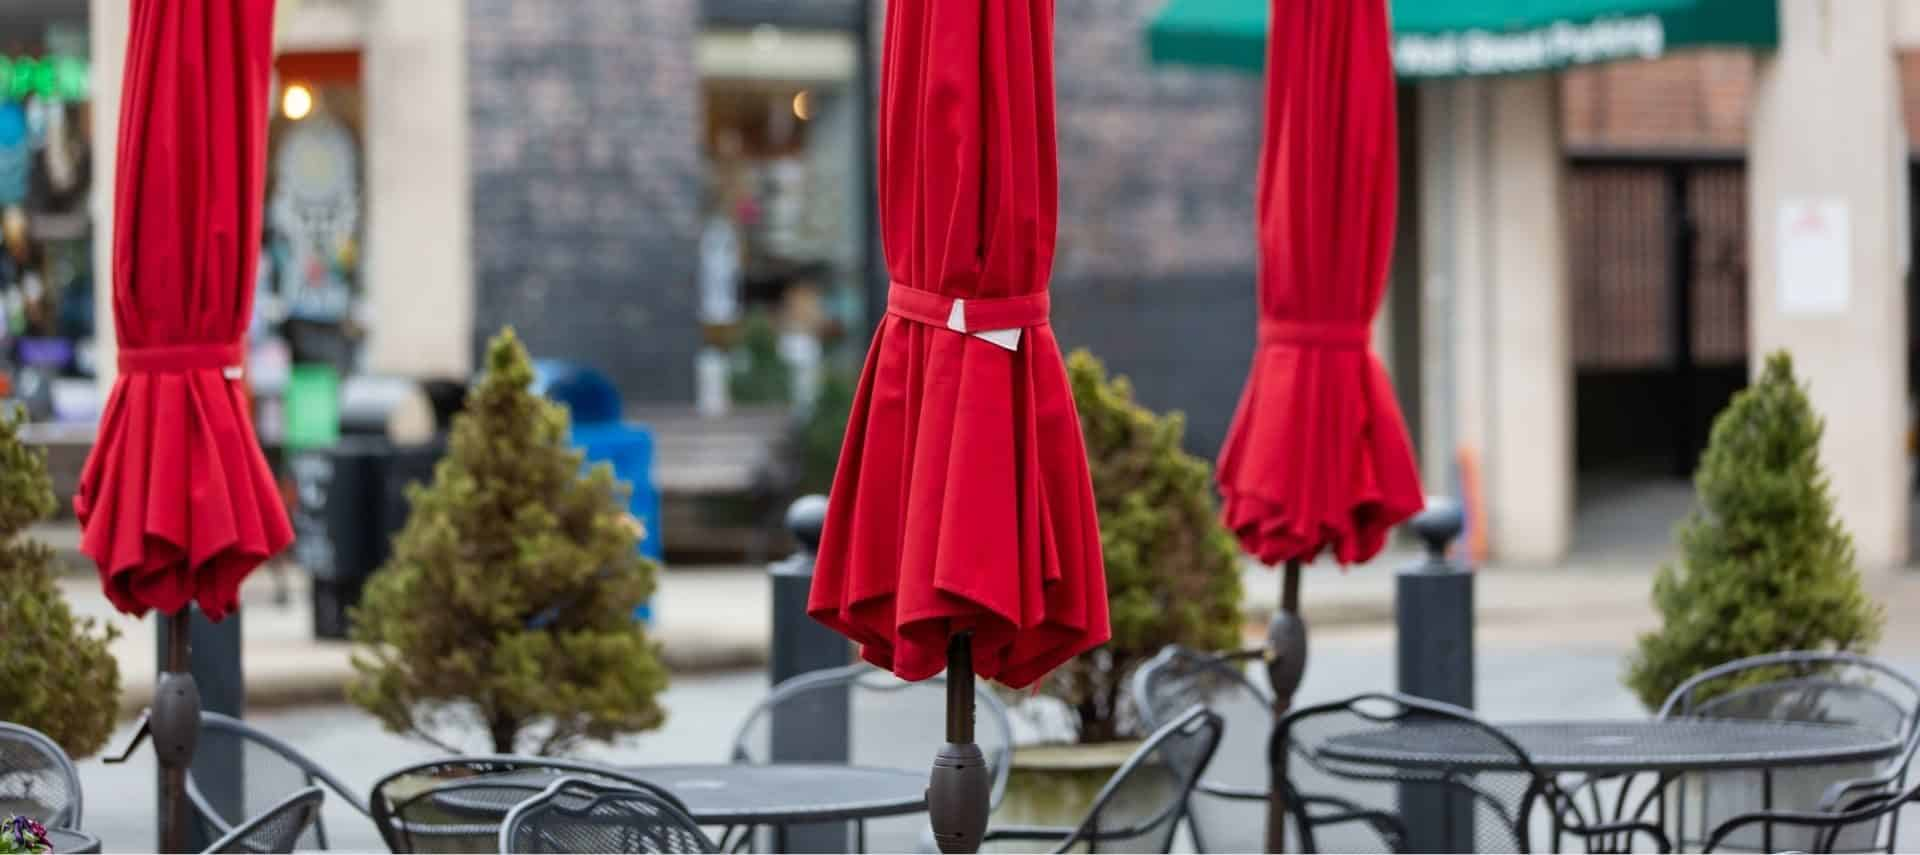 Outdoor dining tables in downtown Asheville with closed red umbrellas